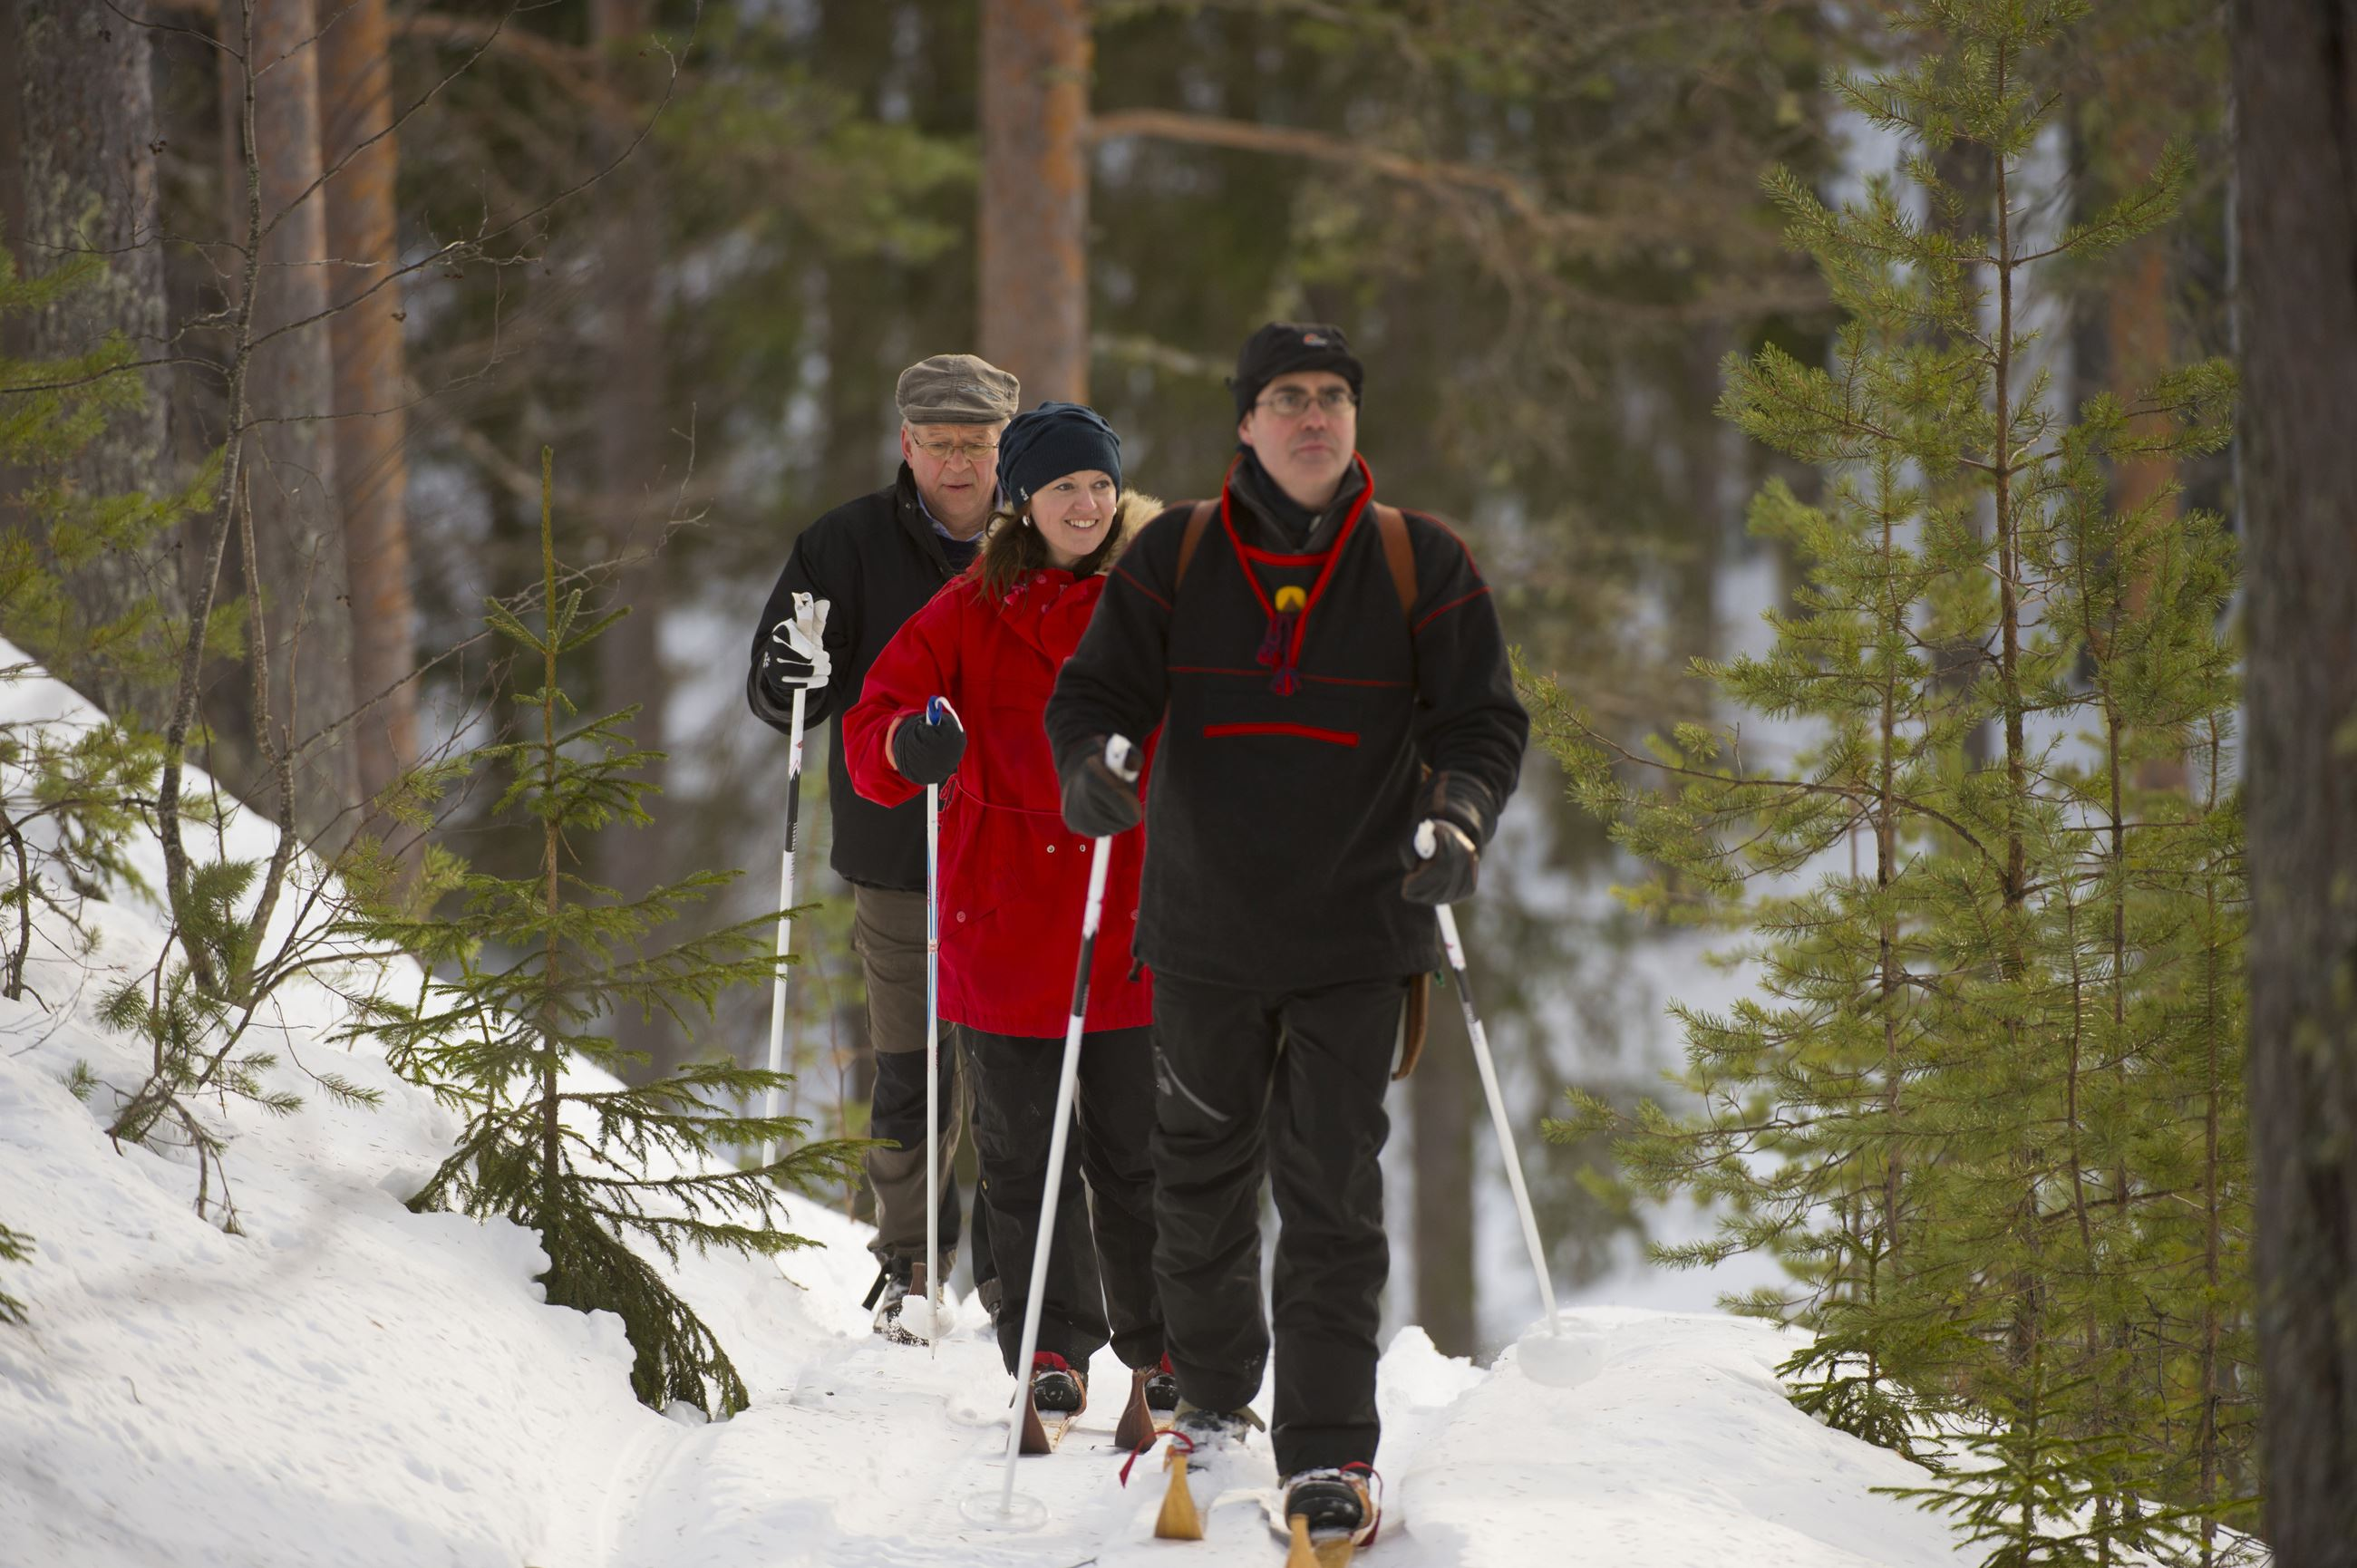 Guided ski trip through the troll forest